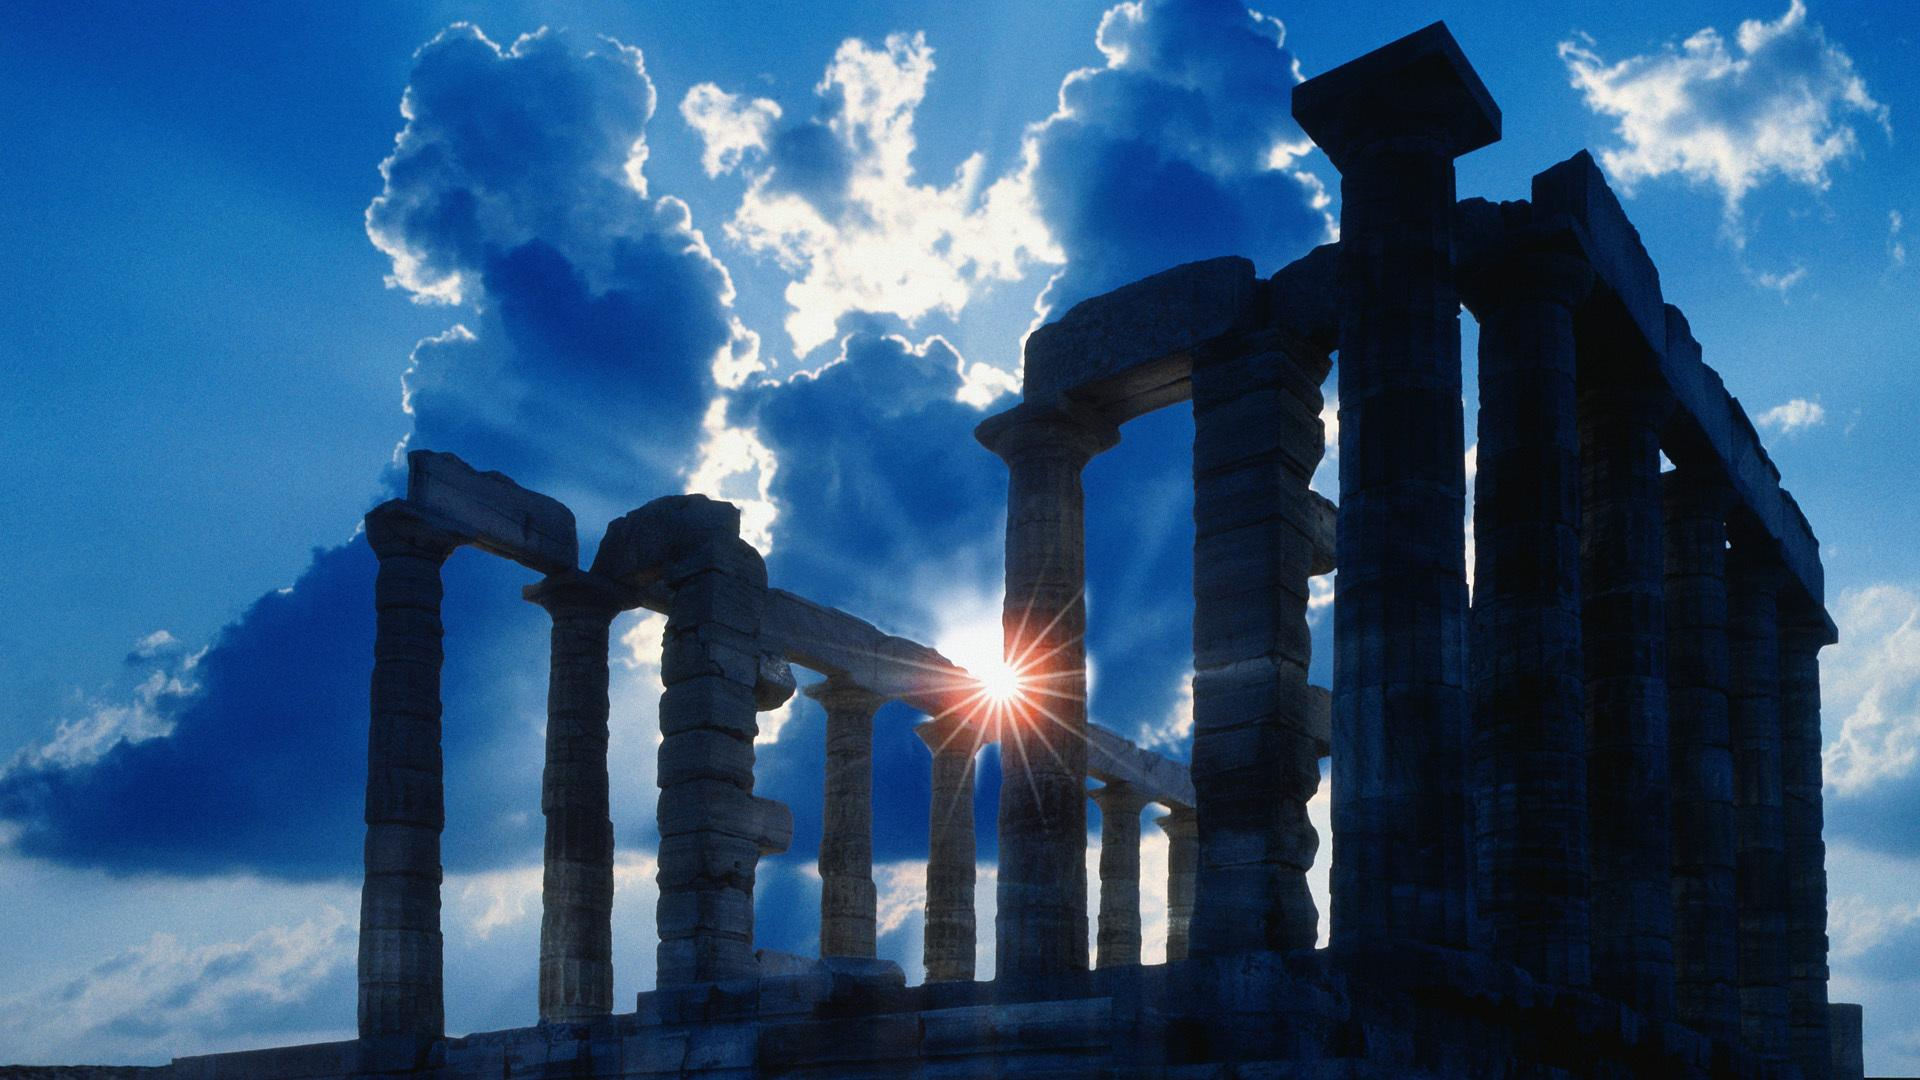 Ancient temple in Athens wallpapers and images - wallpapers ...